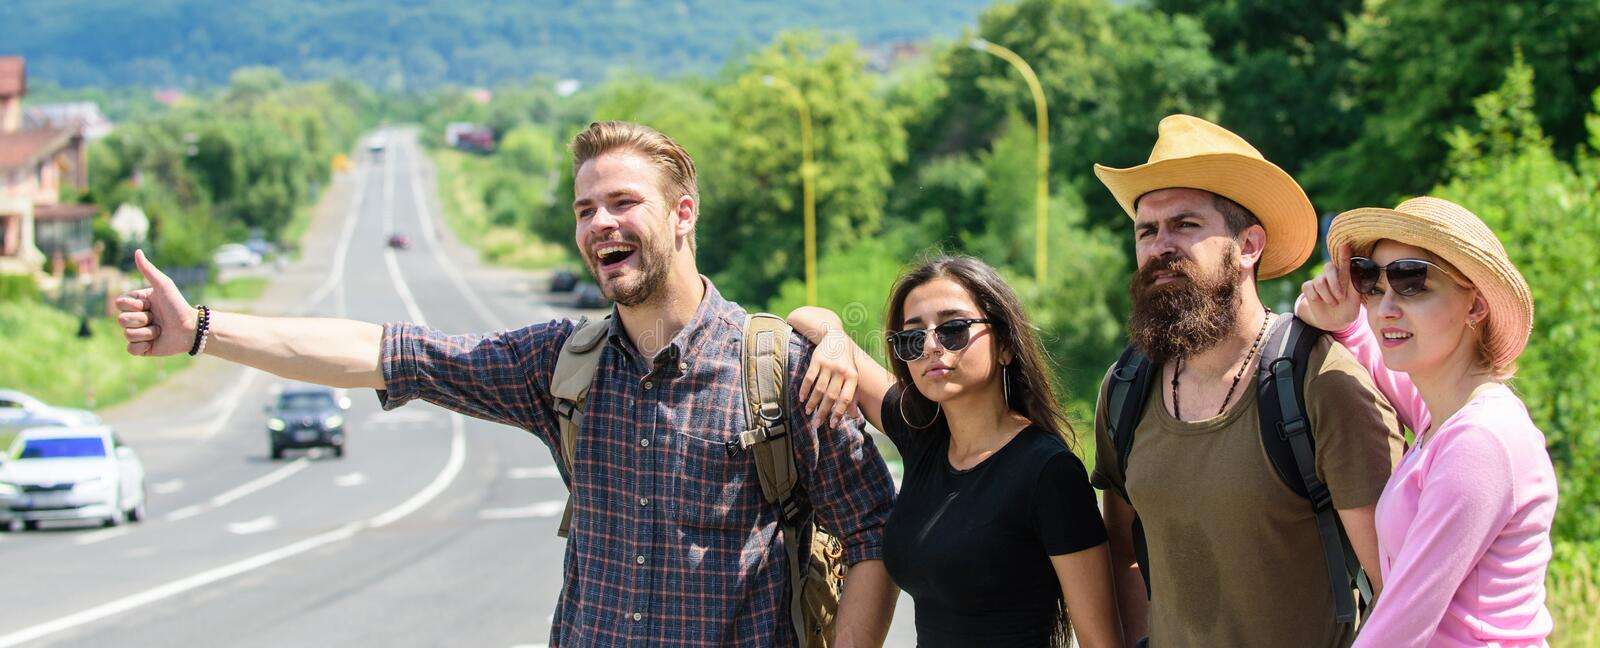 Friends hitchhikers looking for transportation sunny day. On way to vacation. Company friends travelers hitchhiking at. Edge road nature background. Begin great stock images